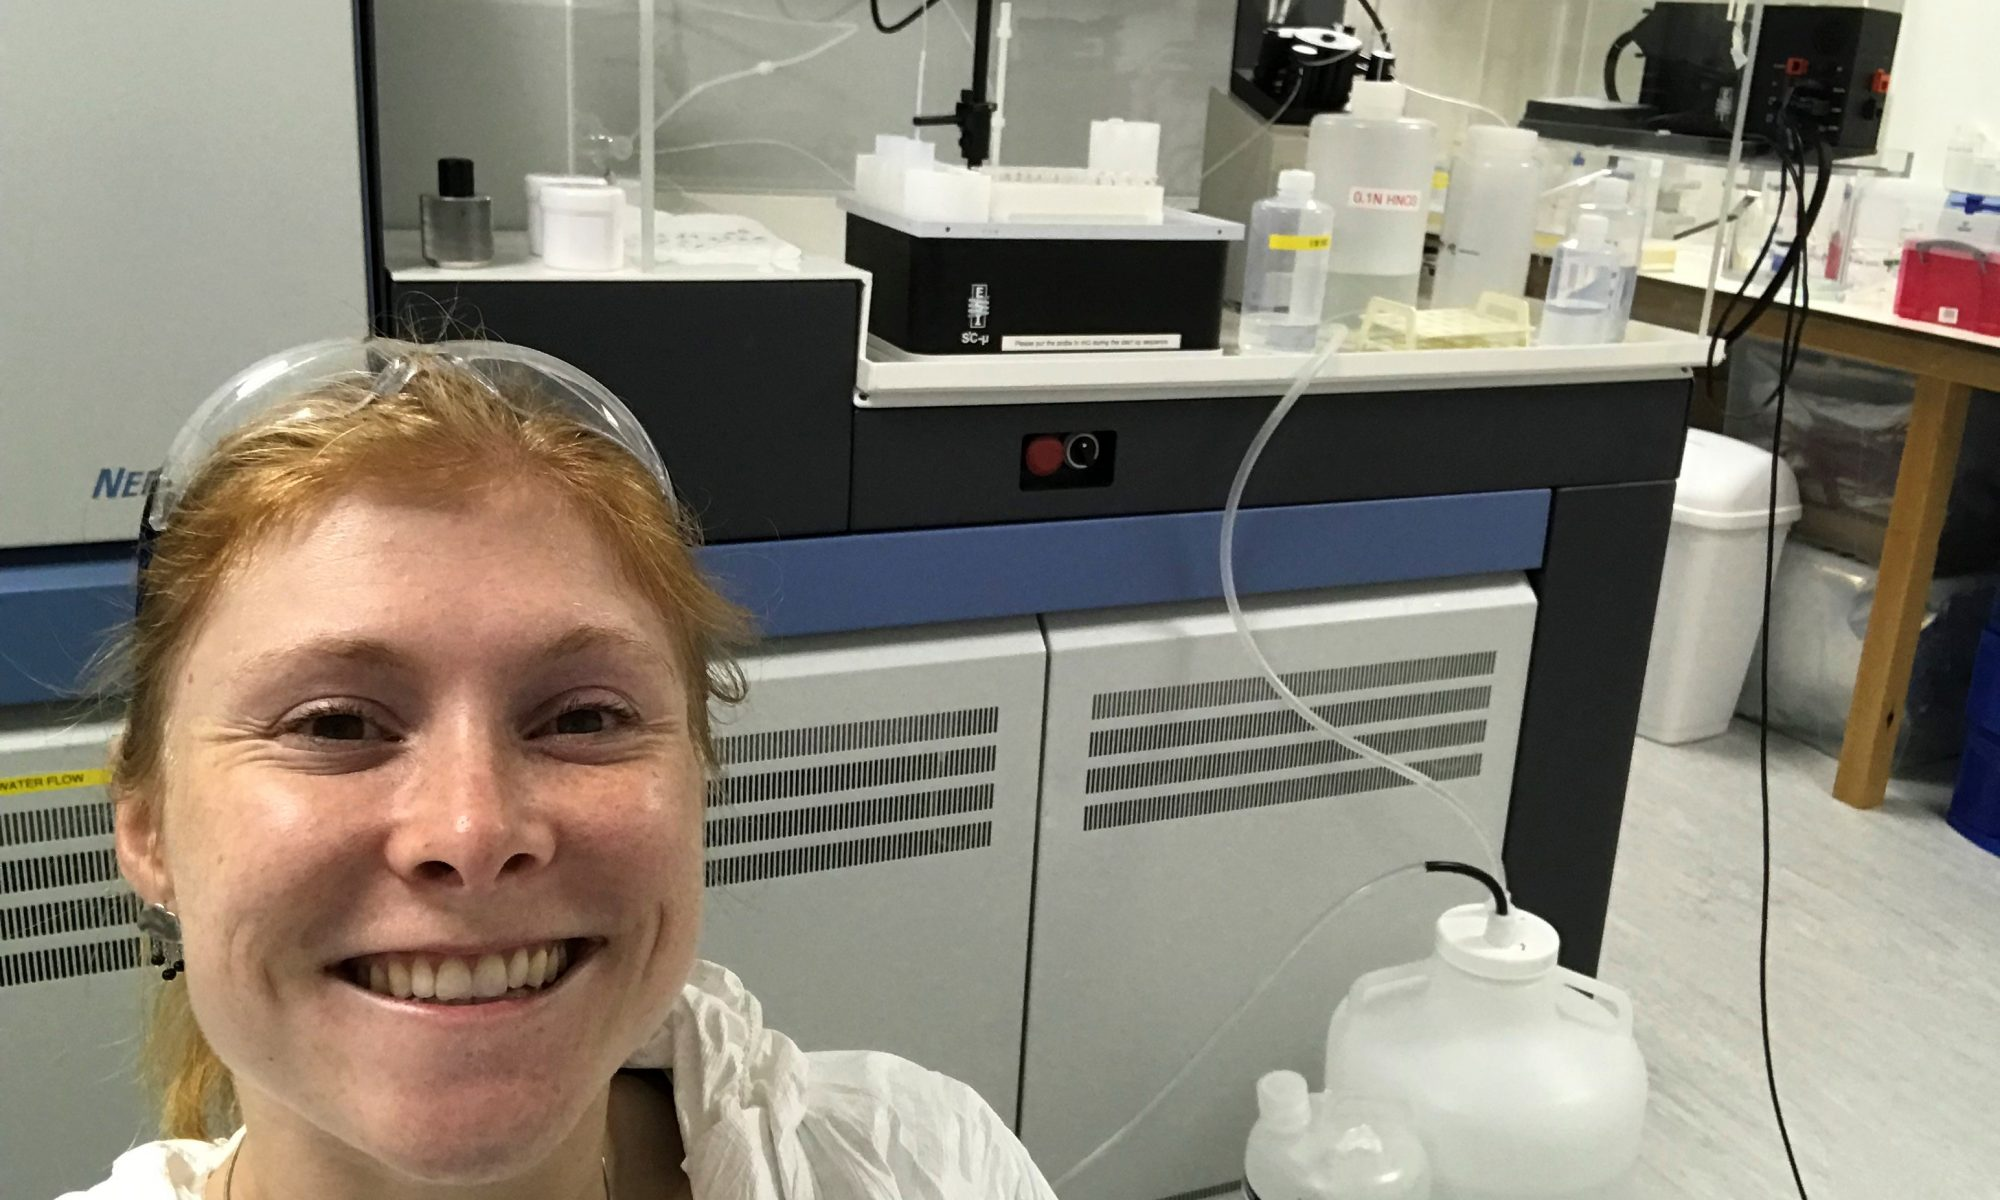 Carrie in the lab, wearing protective gear and stood in front of a mass spectrometer